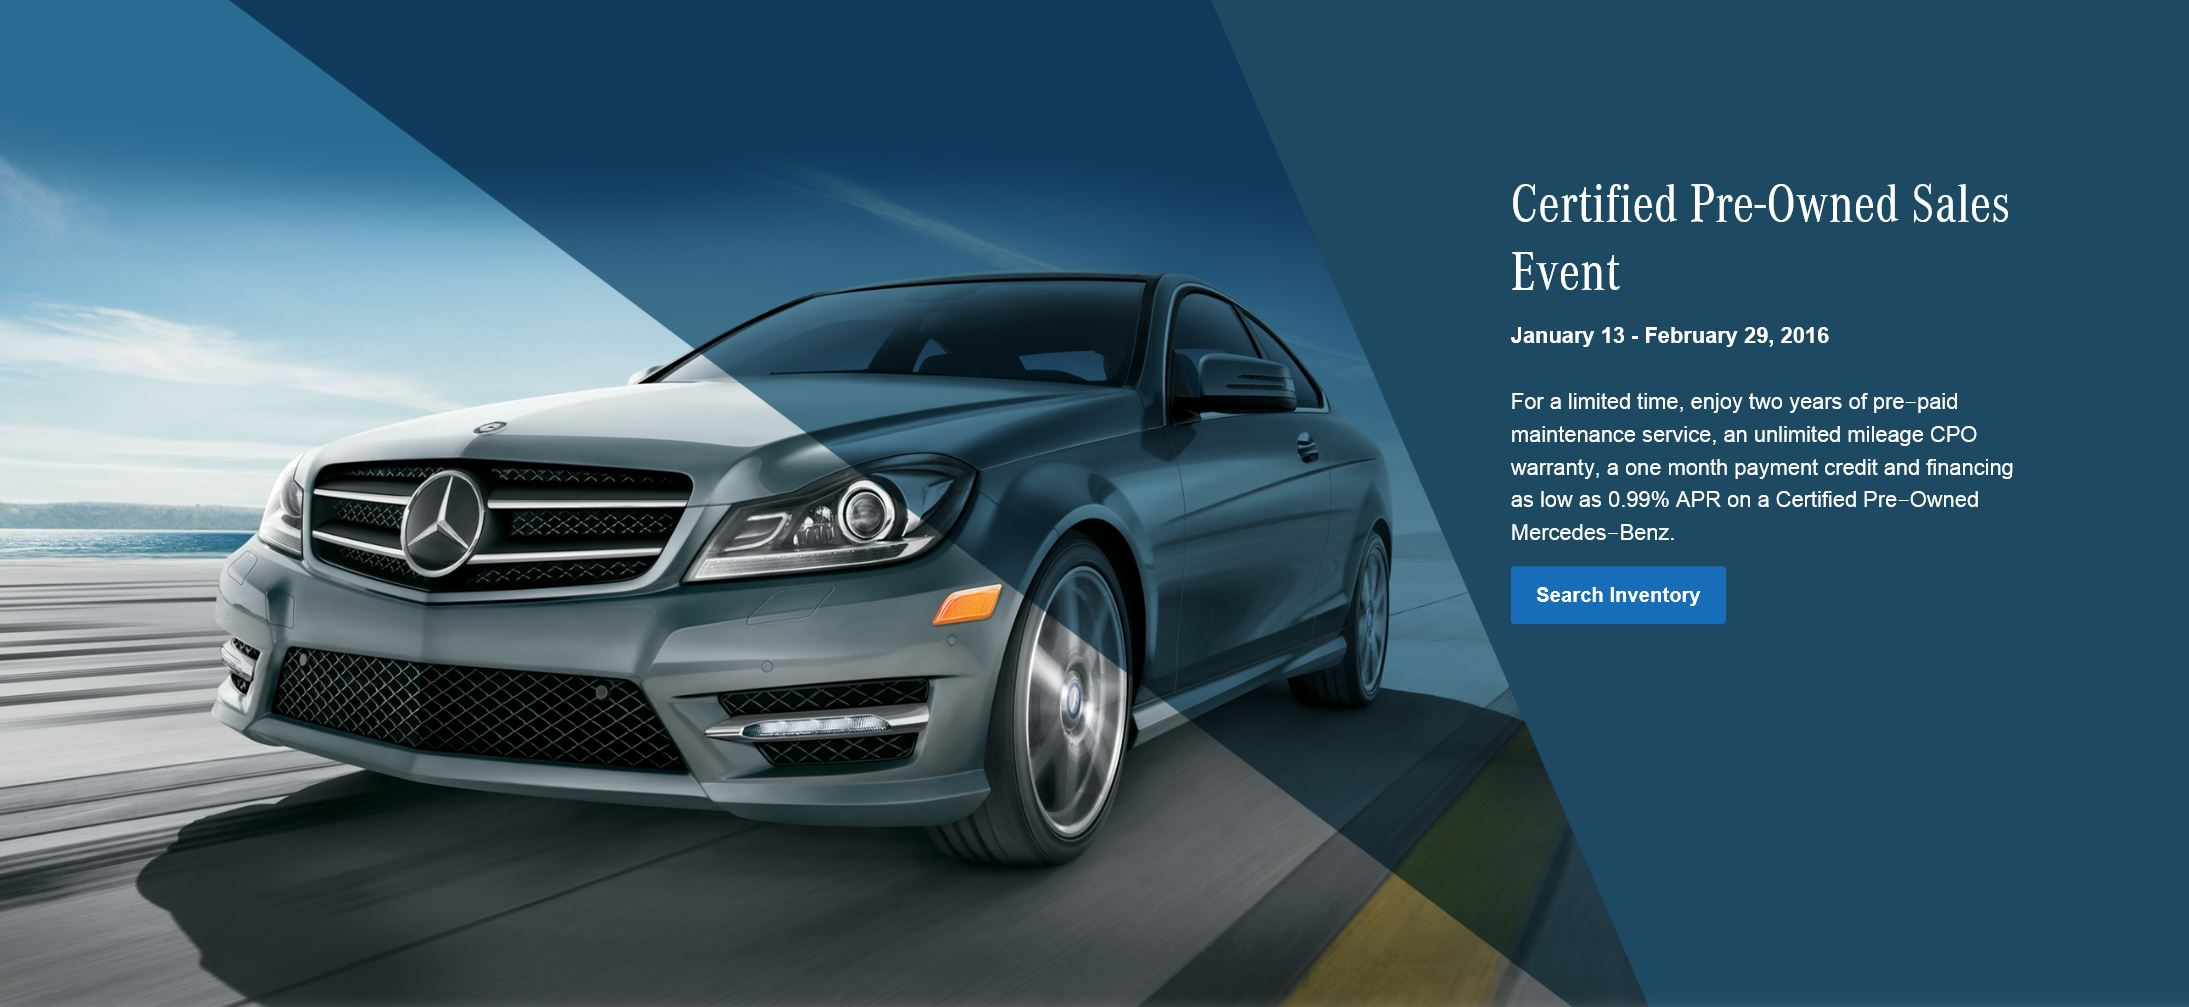 Certified Pre Owned Mercedes >> Mercedes Benz Of Princeton Mercedes Benz Certified Pre Owned Sales